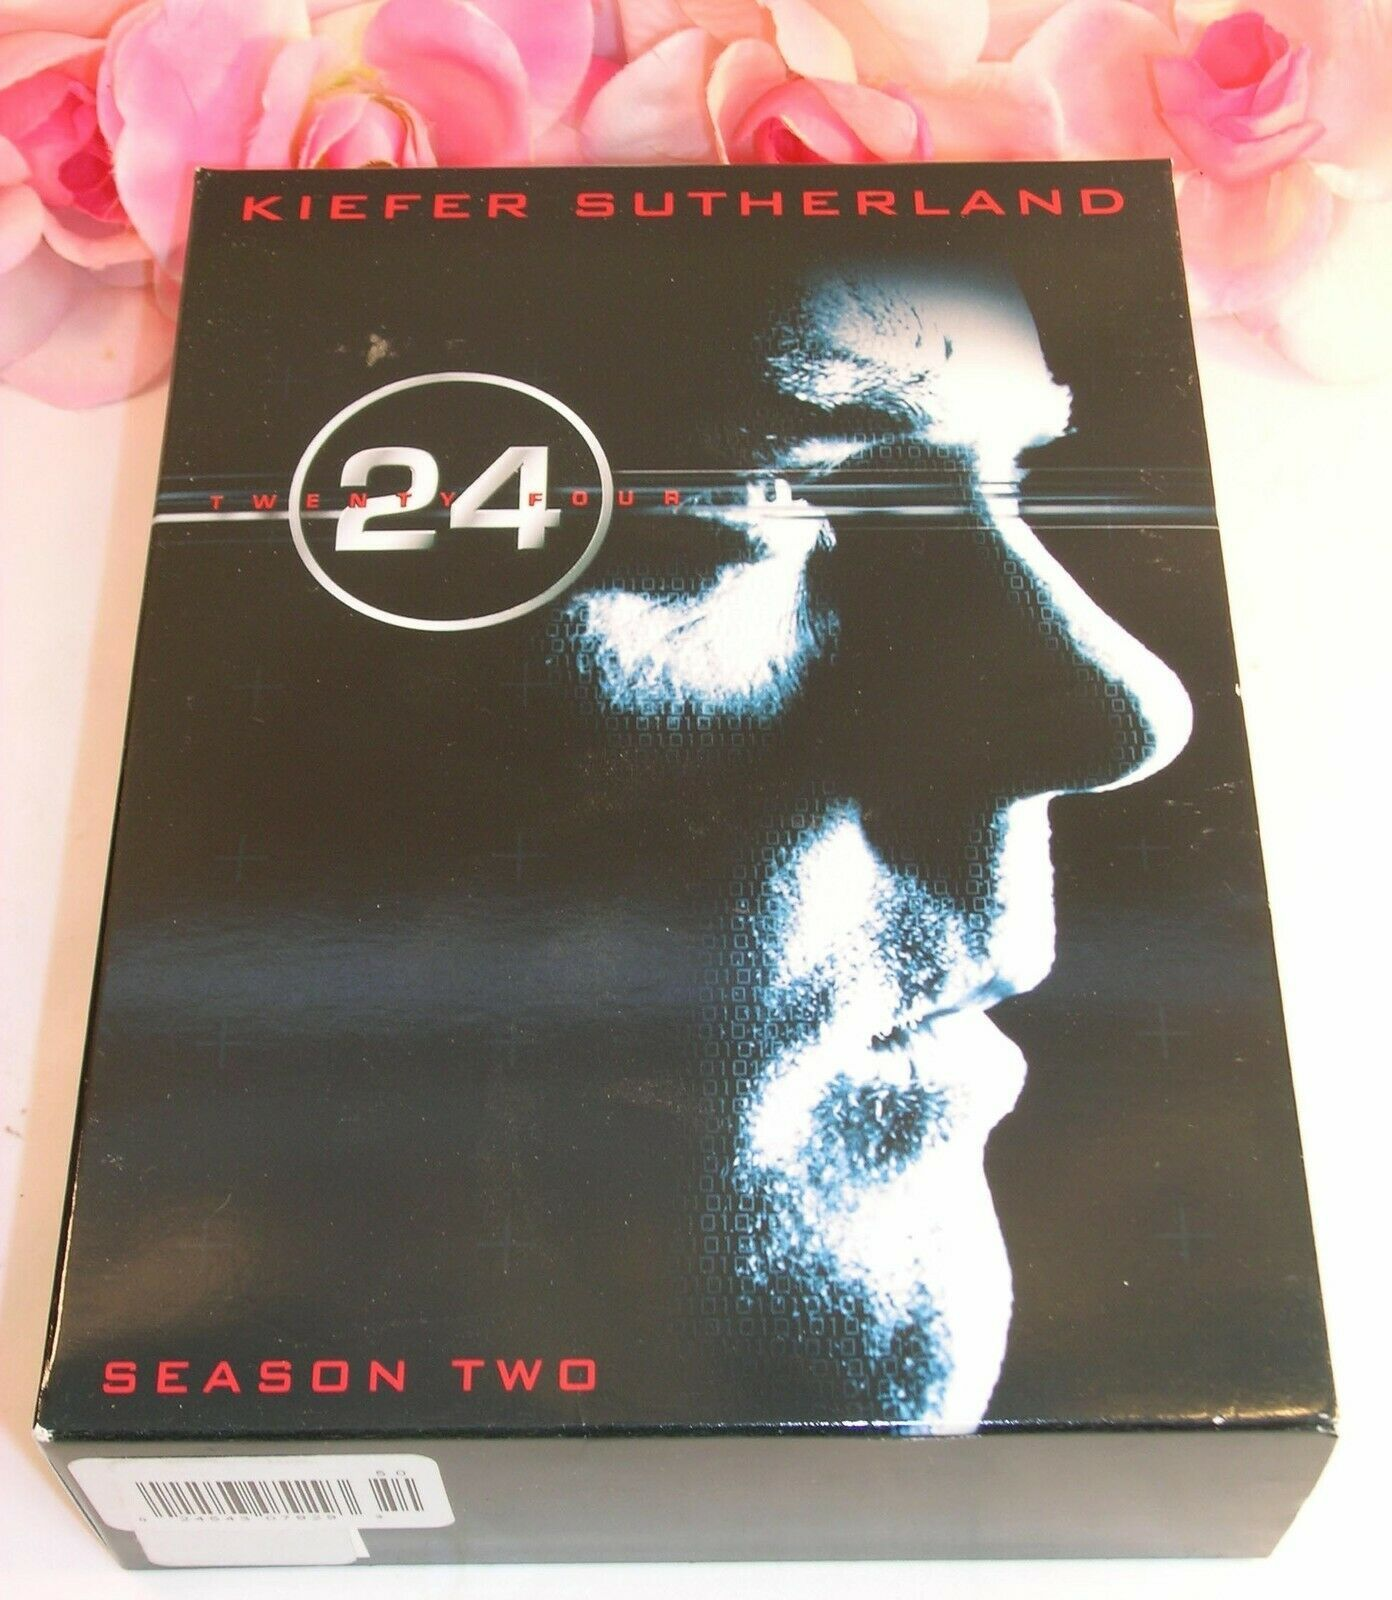 Primary image for 24 Kiefer Sutherland Complete Season Two (2) TV Series Gently Used DVD's 6 Discs